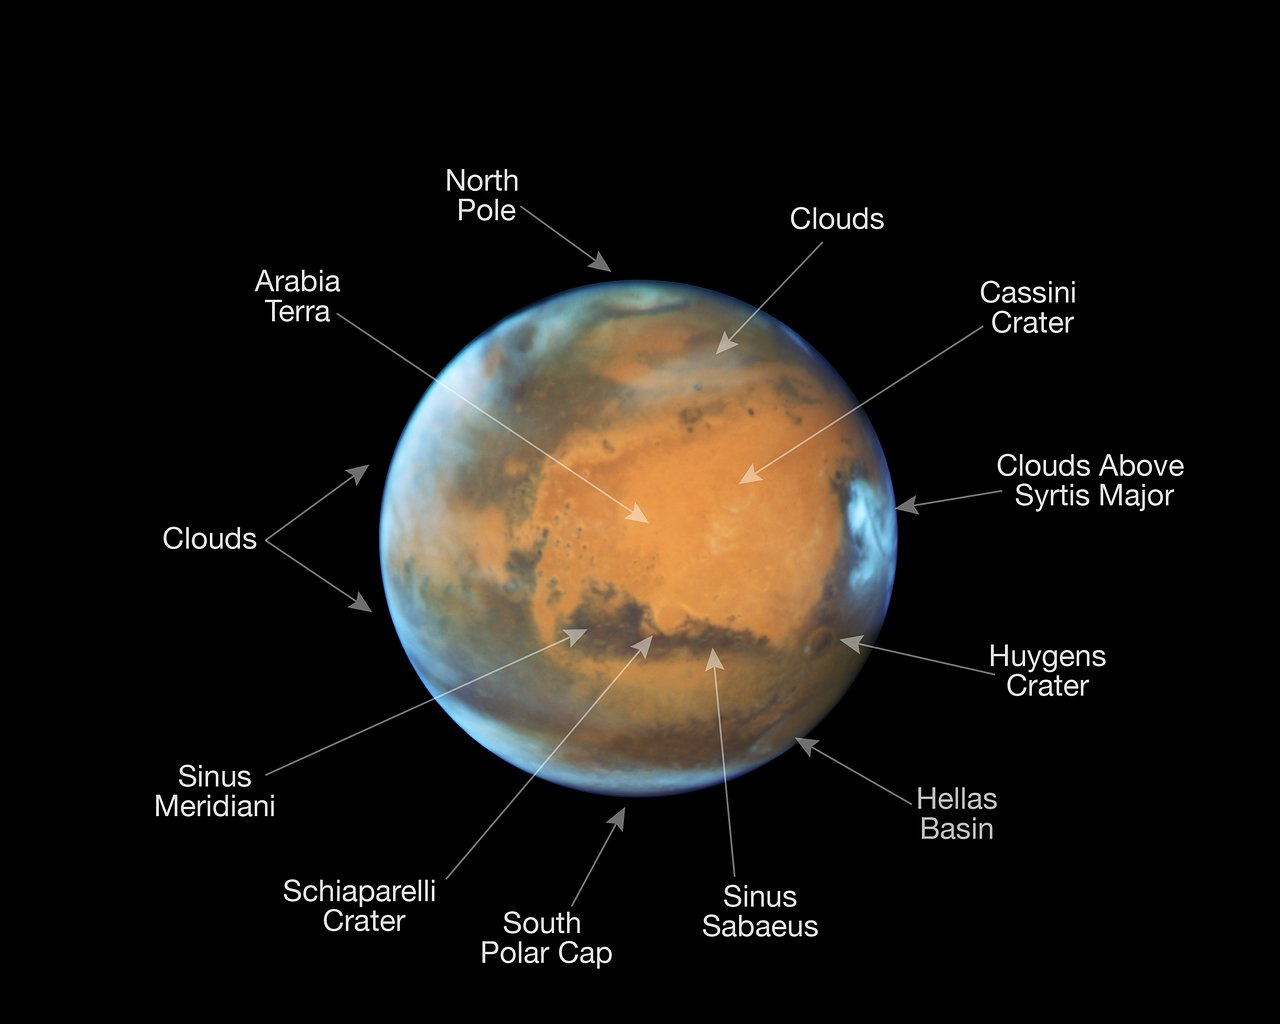 Mars in opposition 2016 (annotated version)